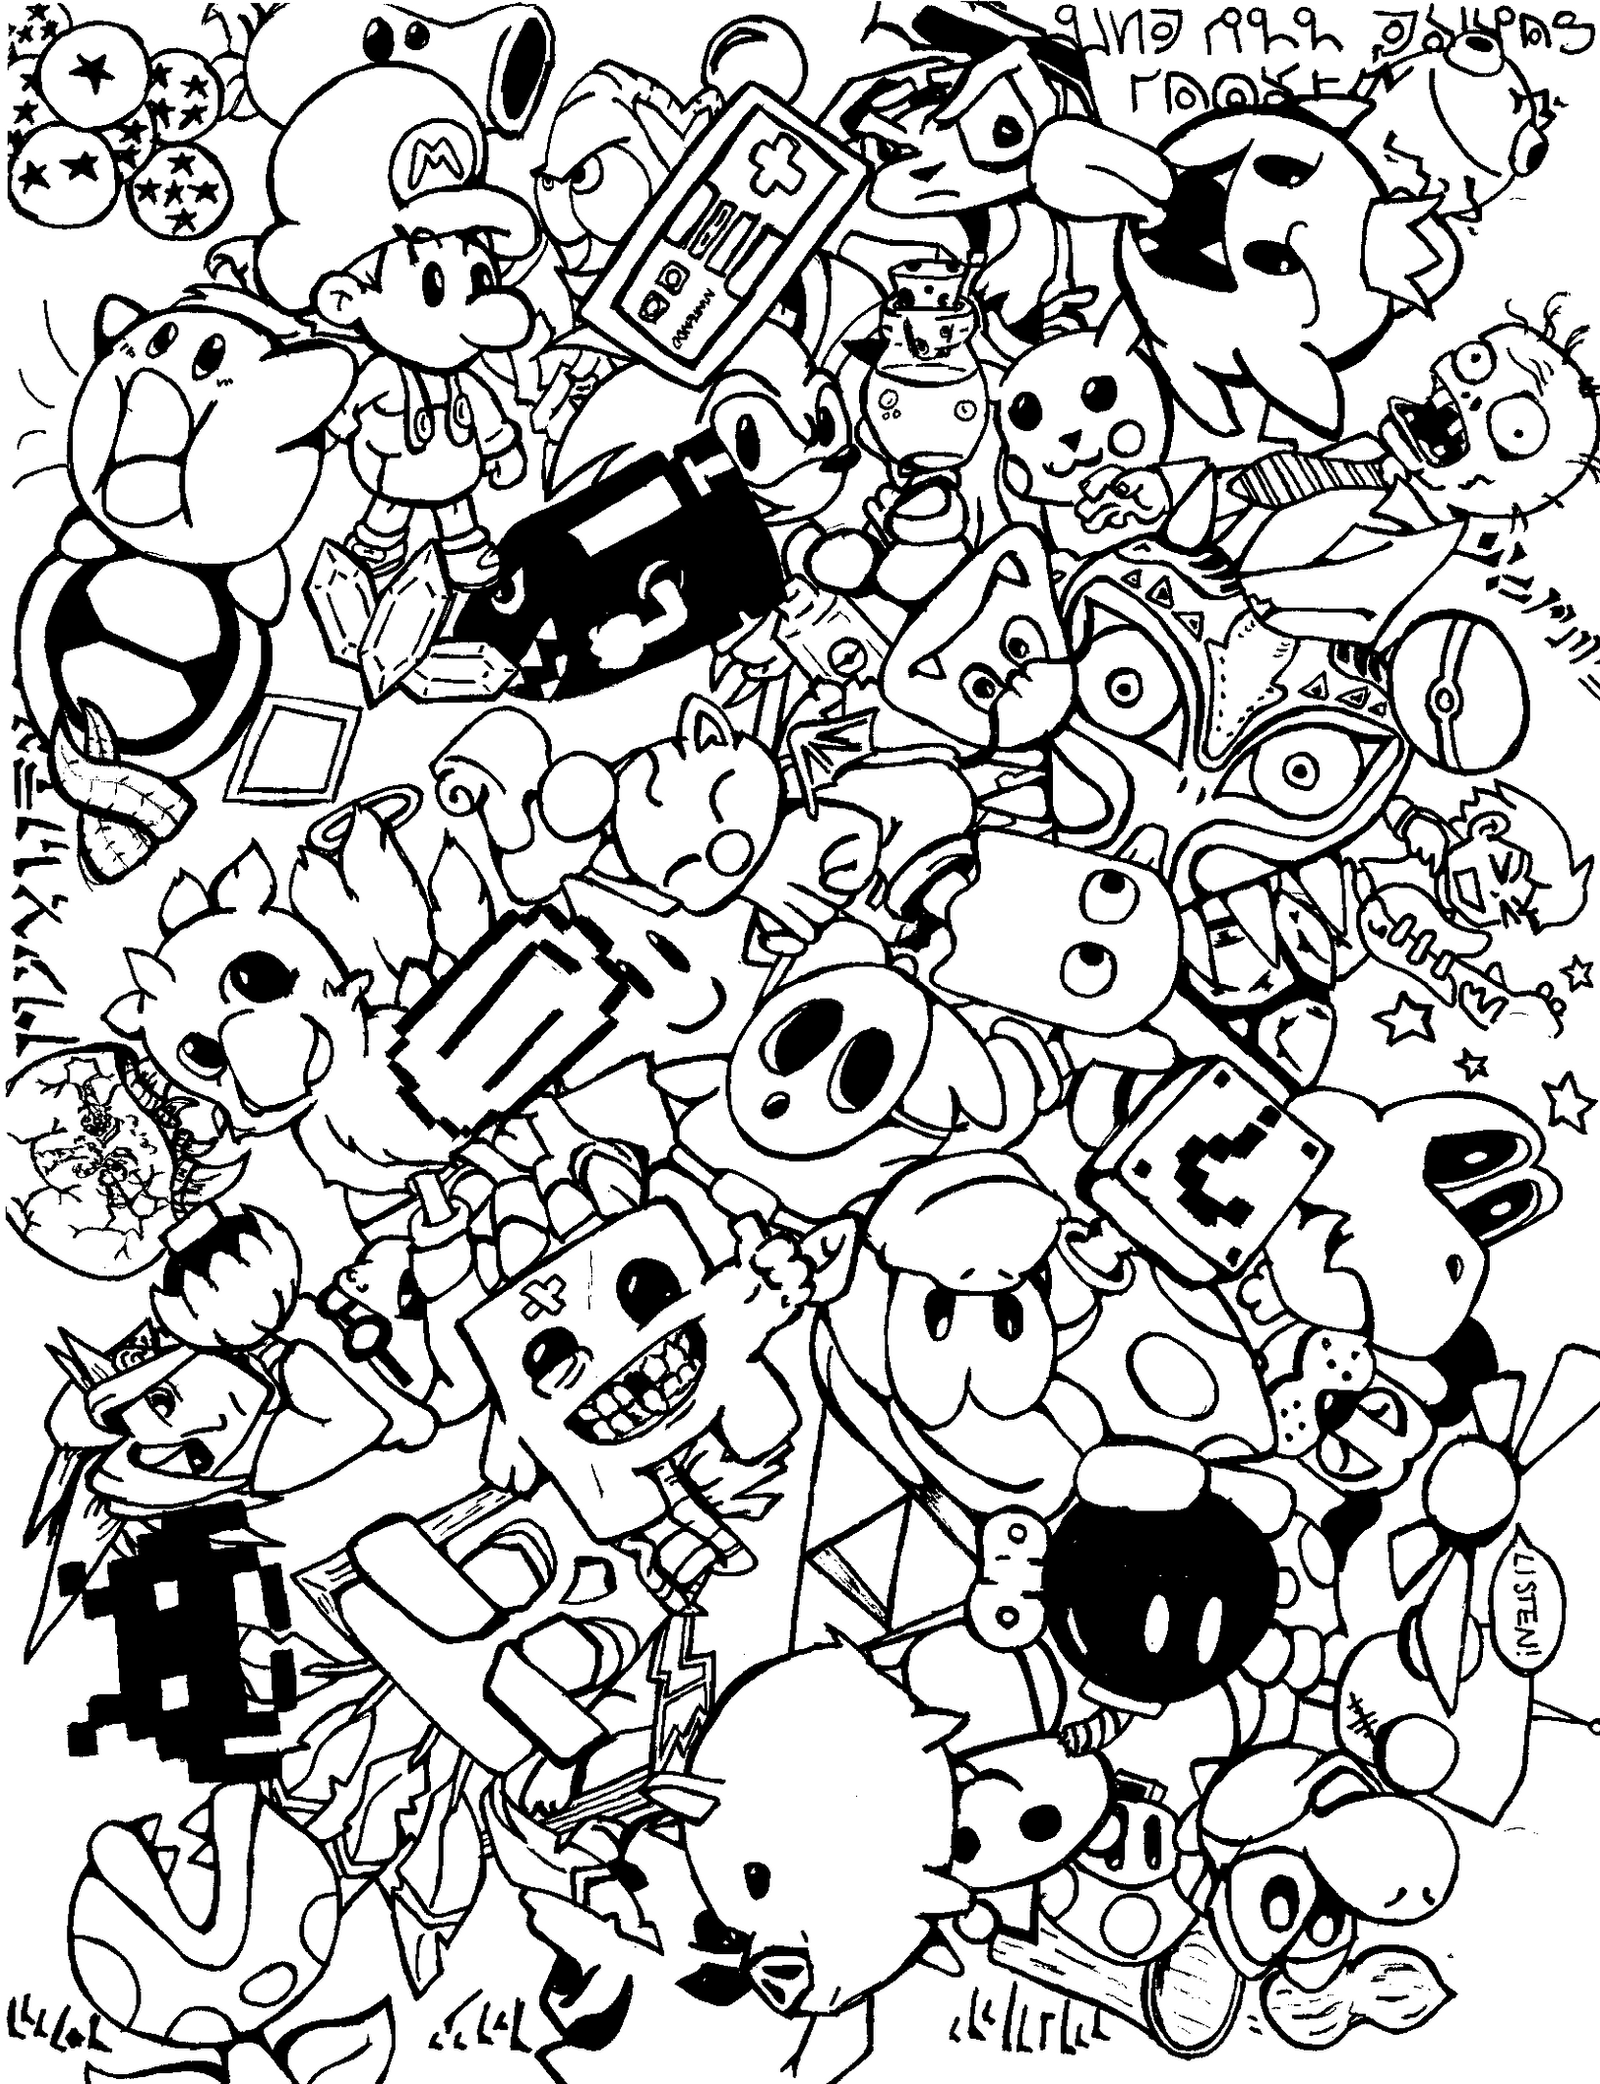 Gaming Doodle By Kayle619 On Deviantart Doodle Coloring Pages 2